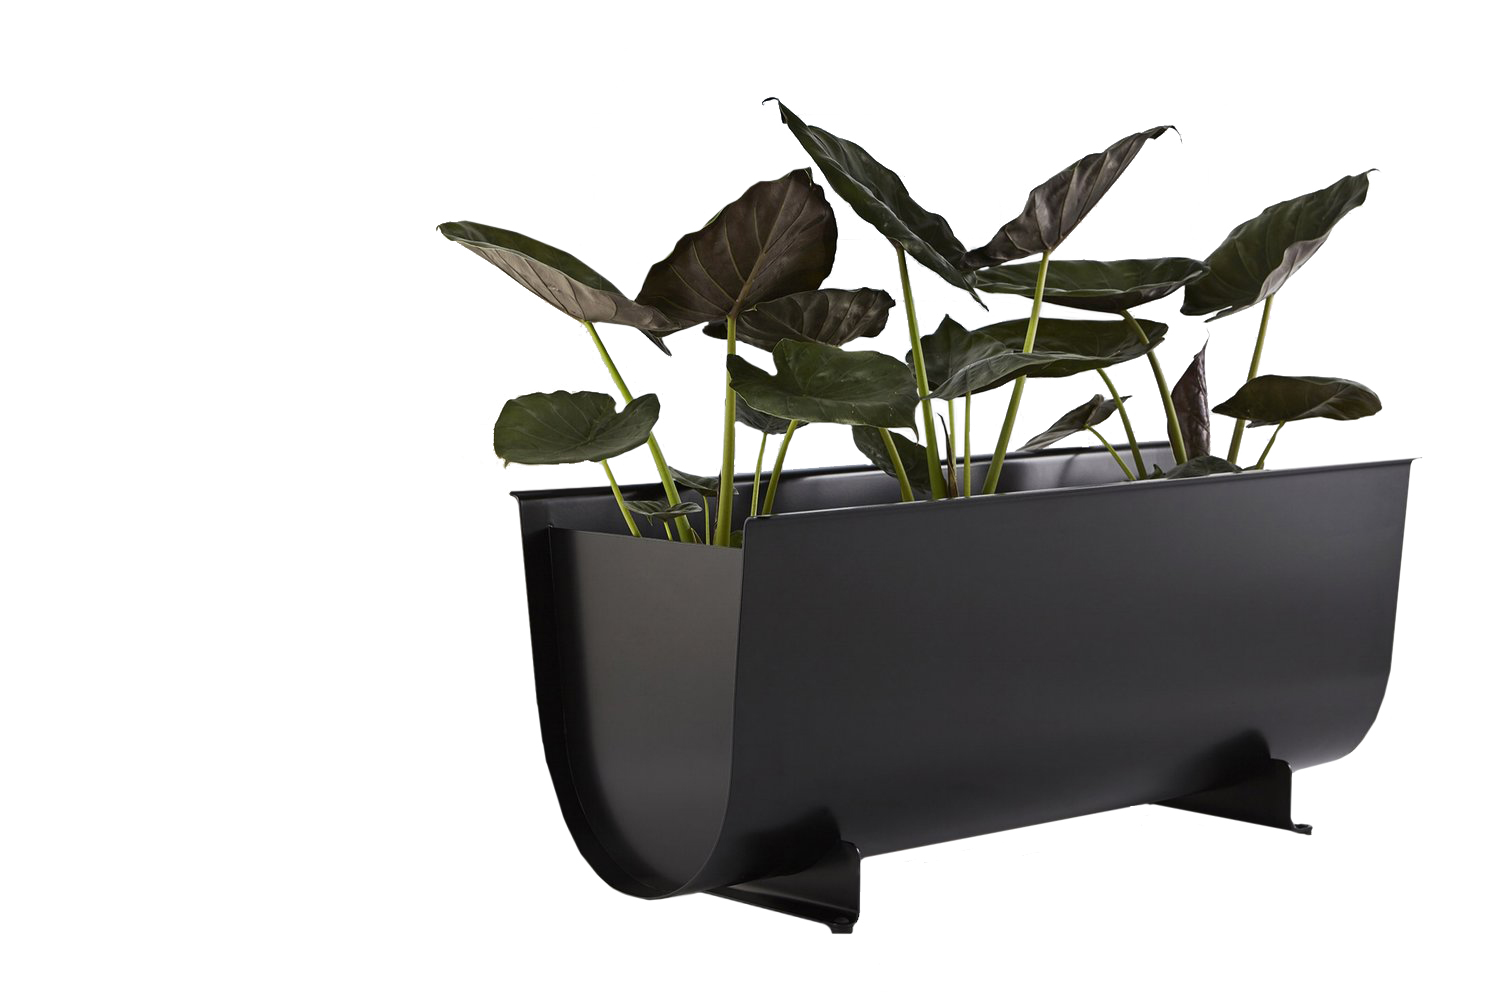 Julia has finally spied the perfect planter trough for apartment living that's not only classically timeless in style, but also very lightweight! Available at  Even Spaces .